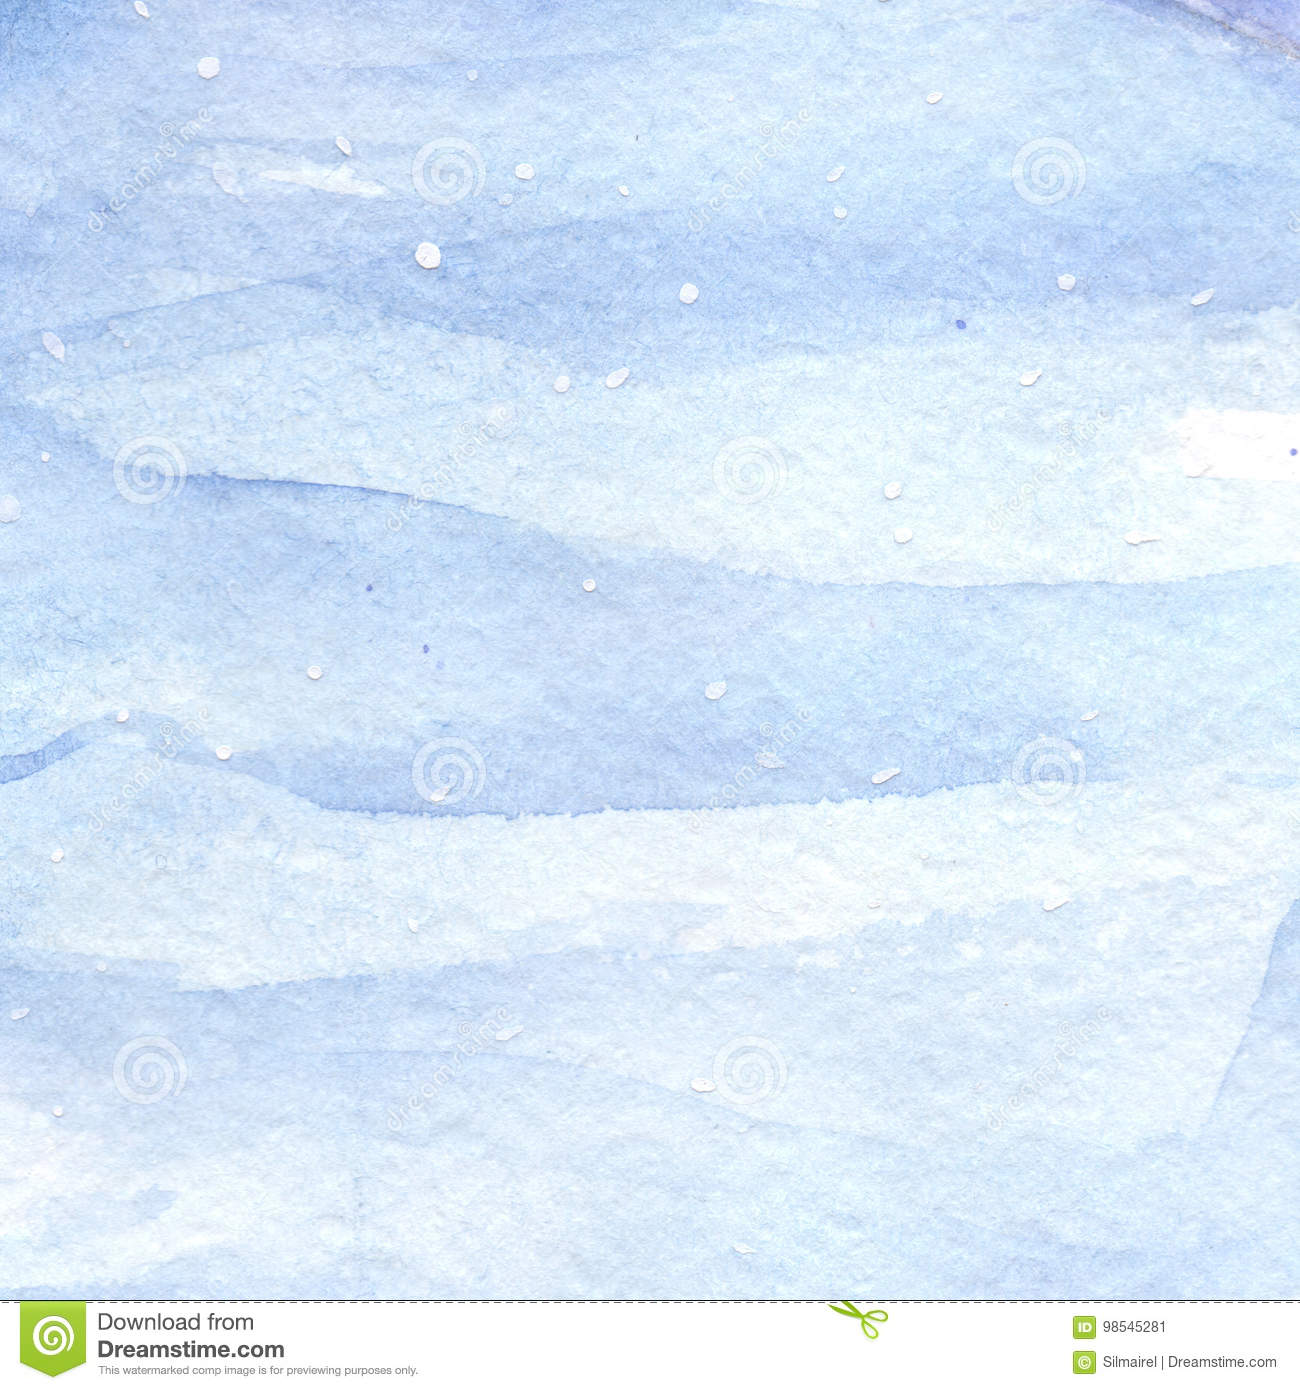 Download 8200 Koleksi Background Blue Winter Paling Keren